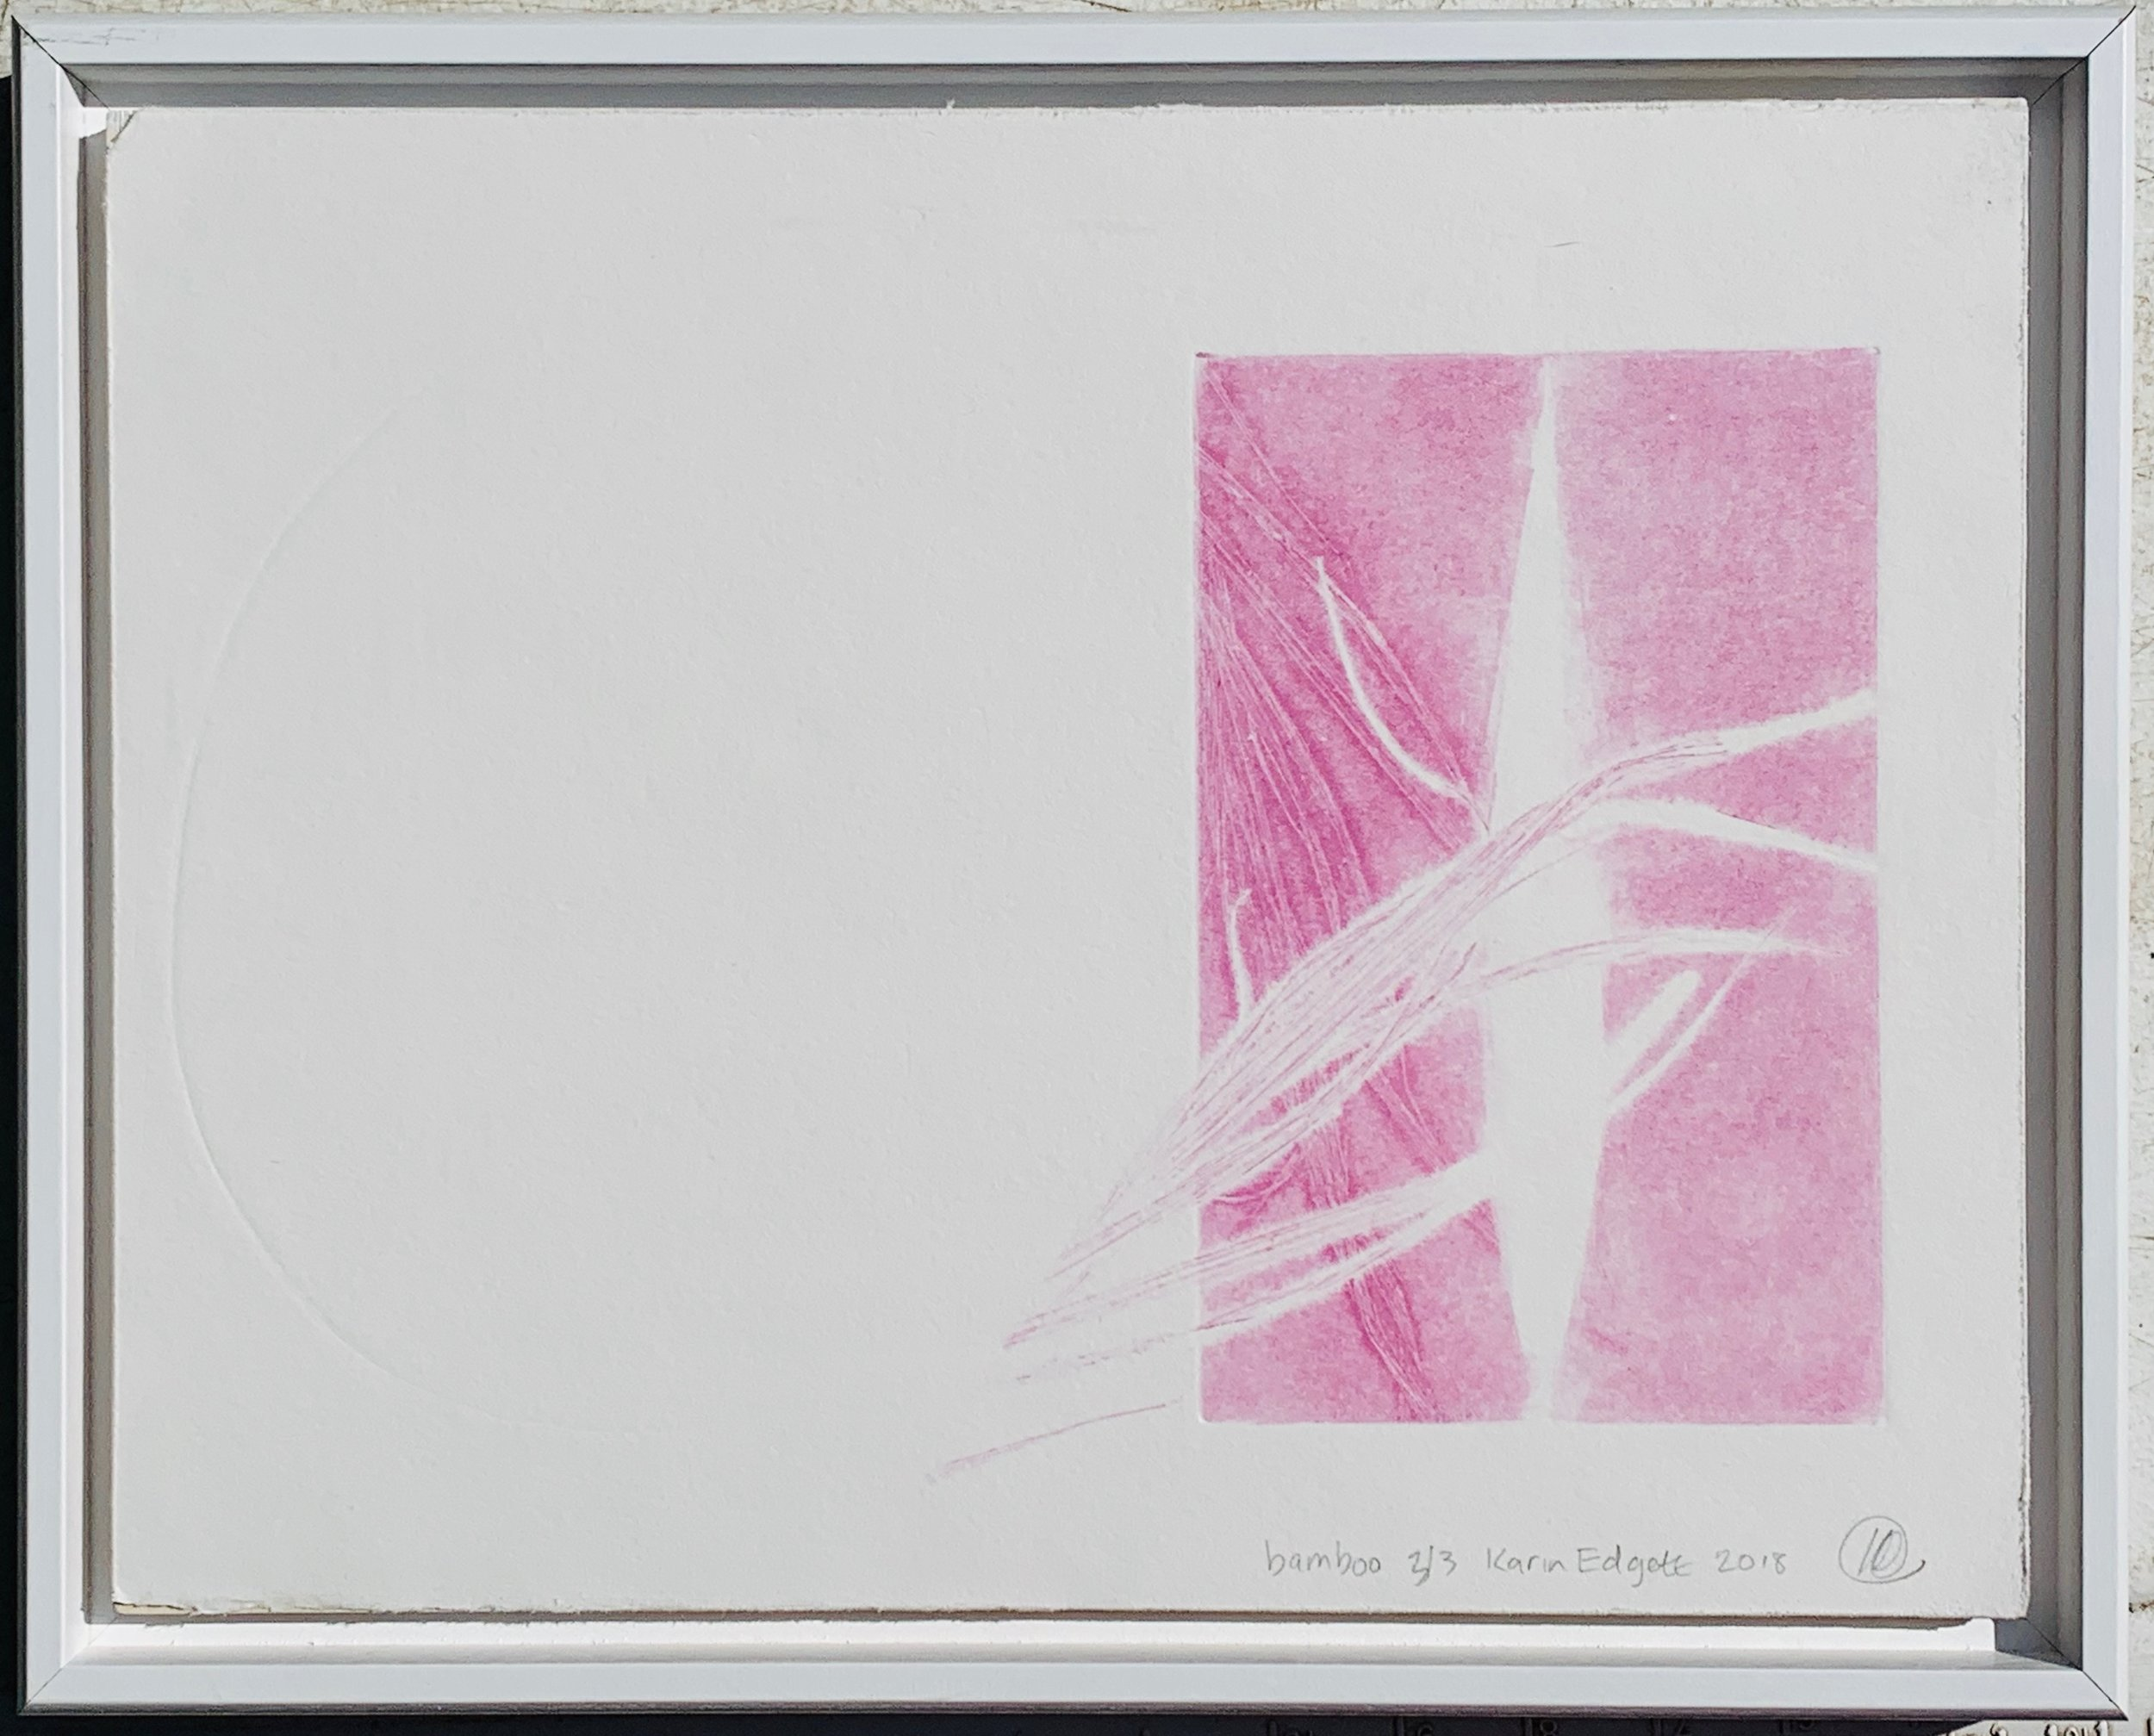 bamboo in pink, Bamboo from my garden was inked and rolled through a printing press with inked plates on BFK Reeves cotton paper. Size is 11x14, It's mounted to a wooden cradle board and framed in white wood.